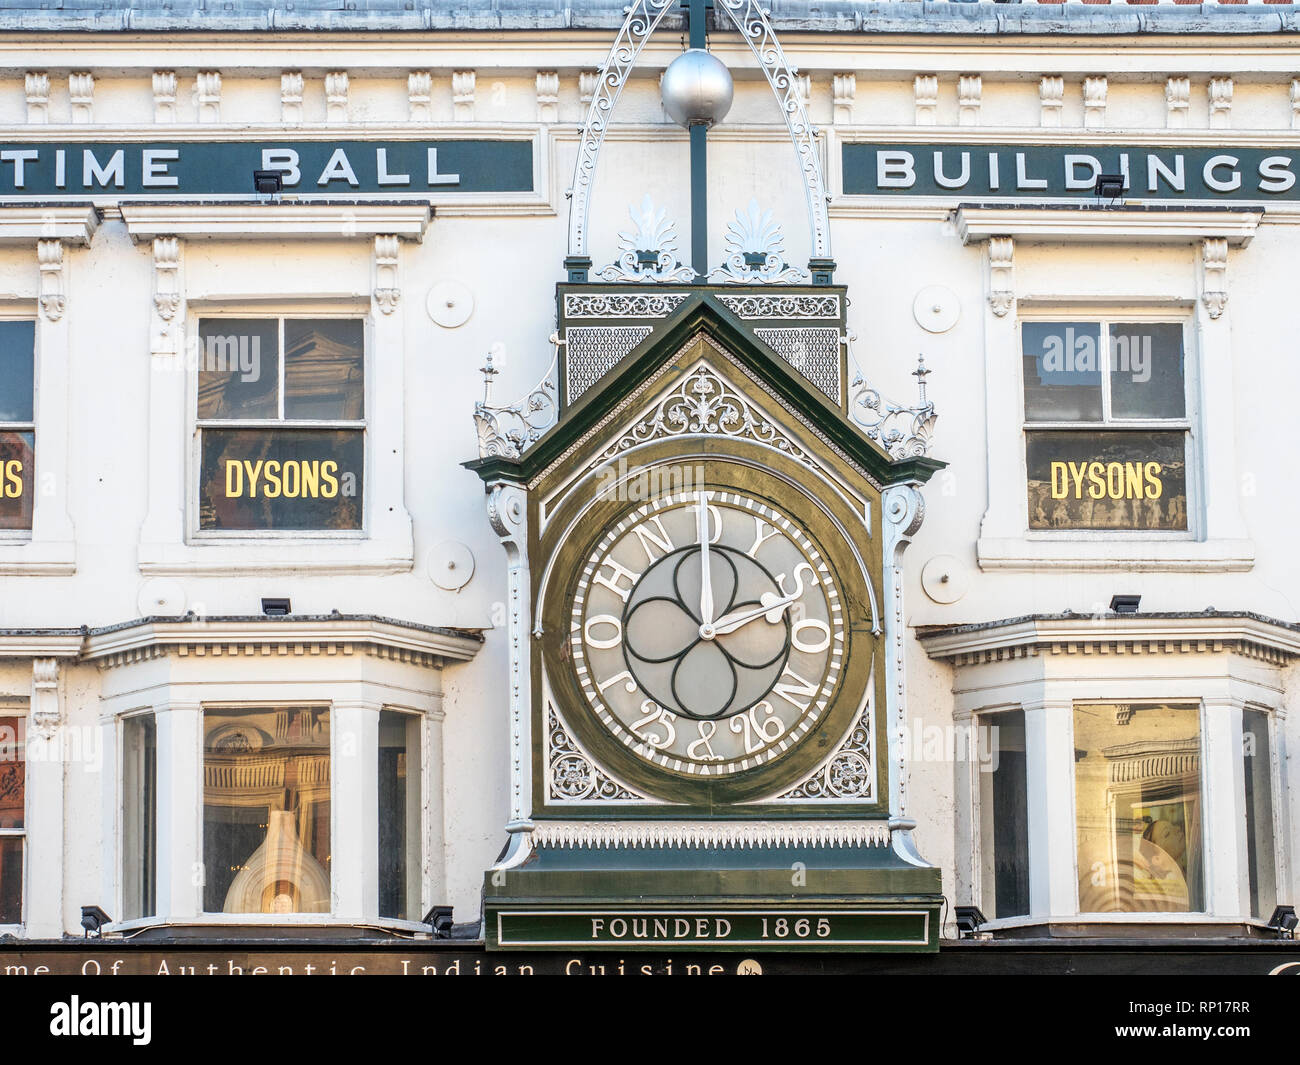 Time Ball Buildings showing John Dyson clock at 25 and 26 Briggate Leeds West Yorkshire England - Stock Image